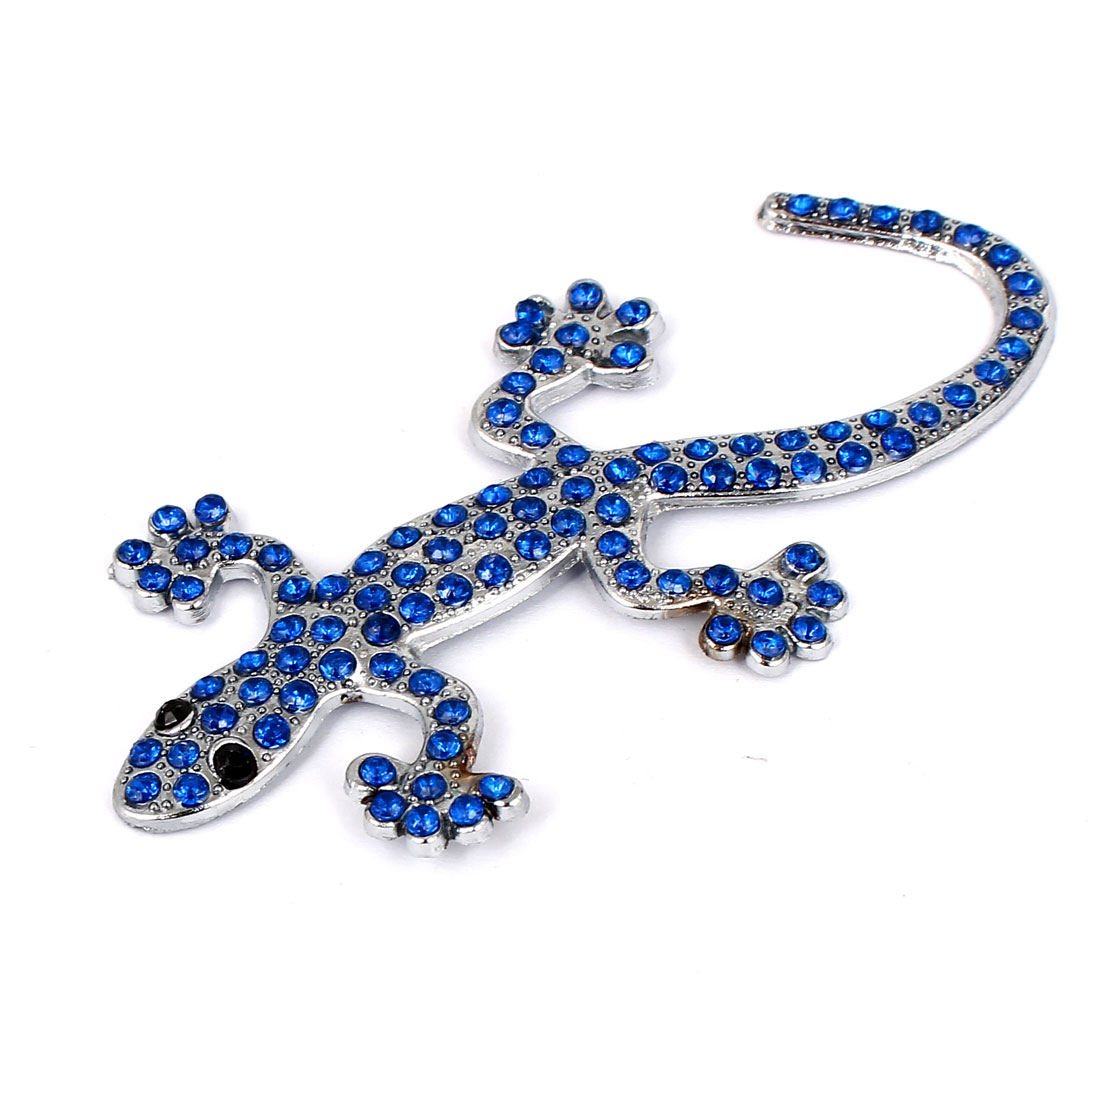 Bling Blue Crystal Decor Wall Gecko Design 3D Sticker for Auto Car